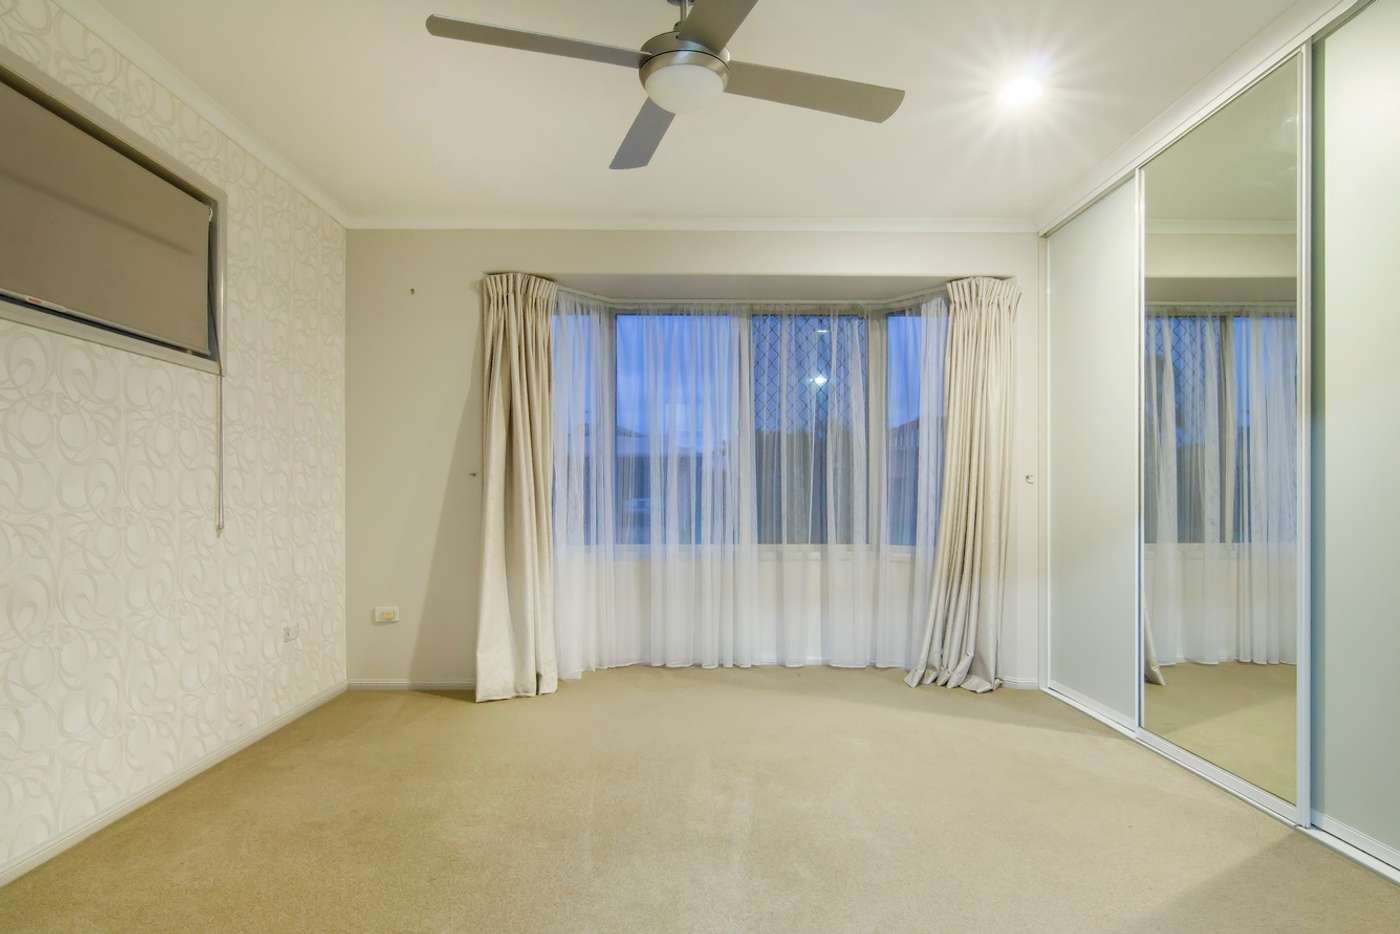 Sixth view of Homely house listing, 57 Ben Nevis Street, Beaconsfield QLD 4740